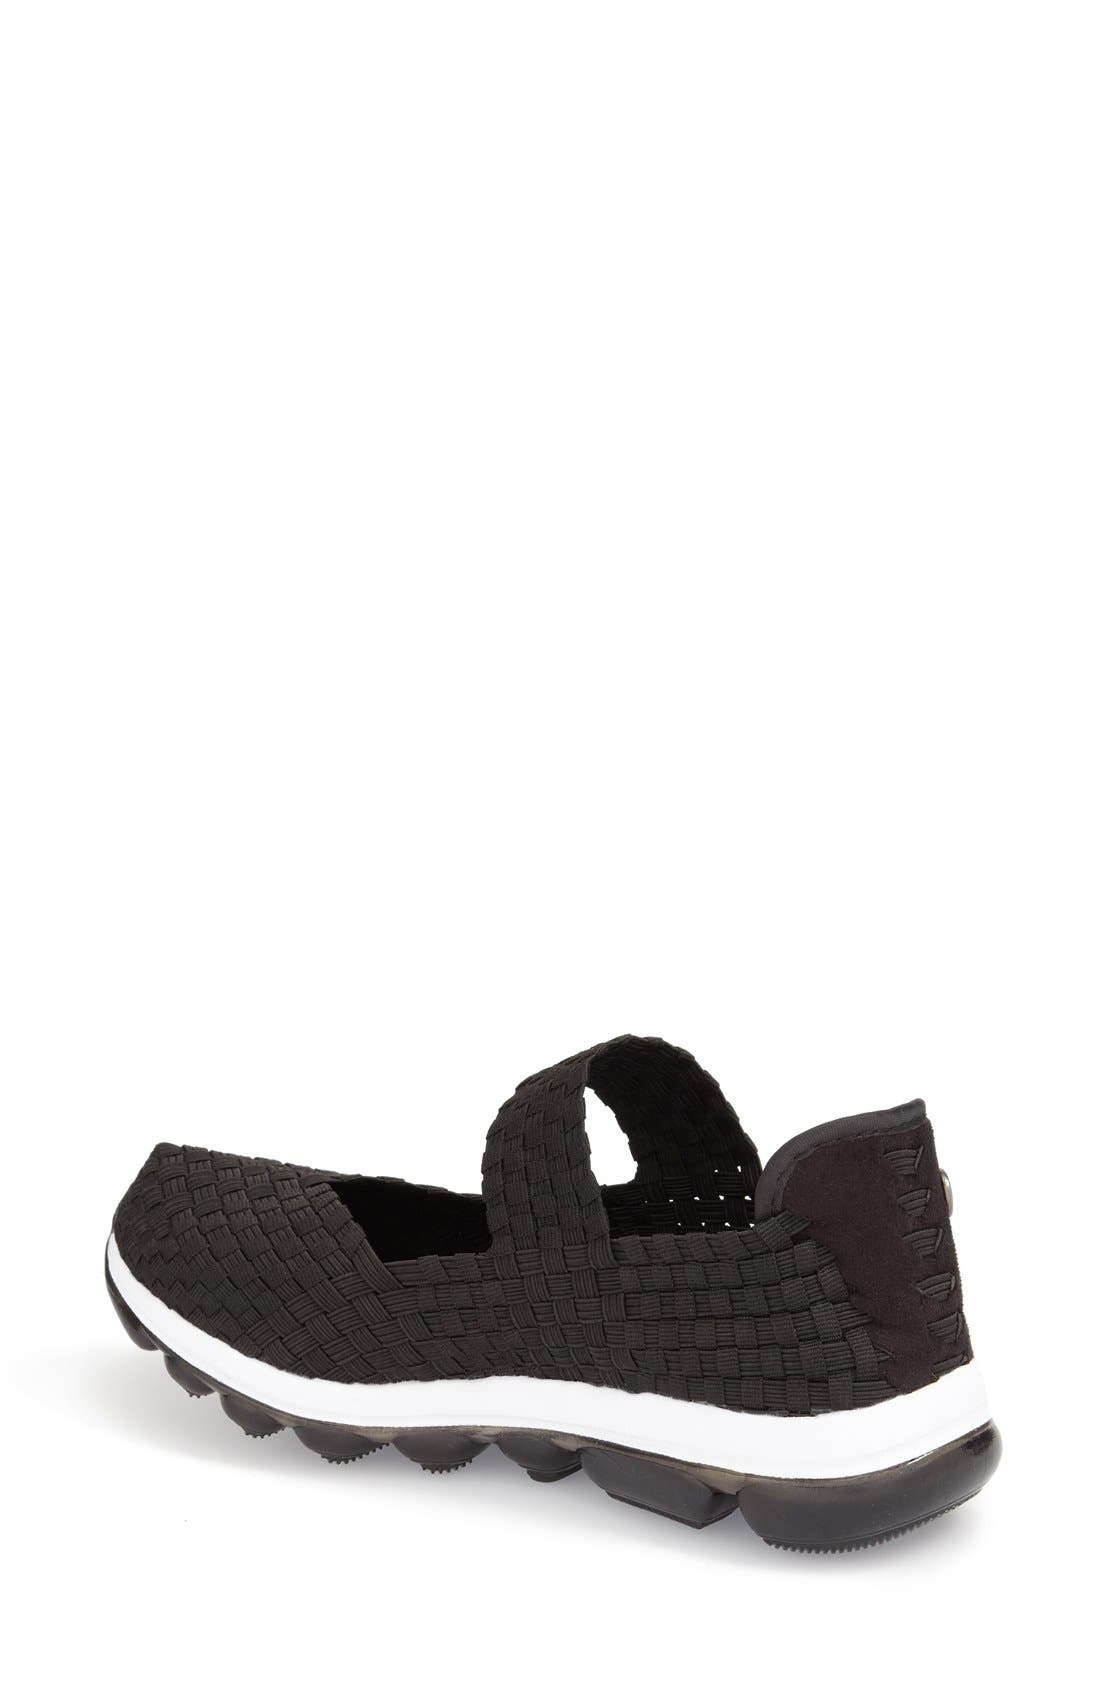 'Gummies Charm' Stretch Woven Slip-On Sneaker,                             Alternate thumbnail 2, color,                             Black Fabric